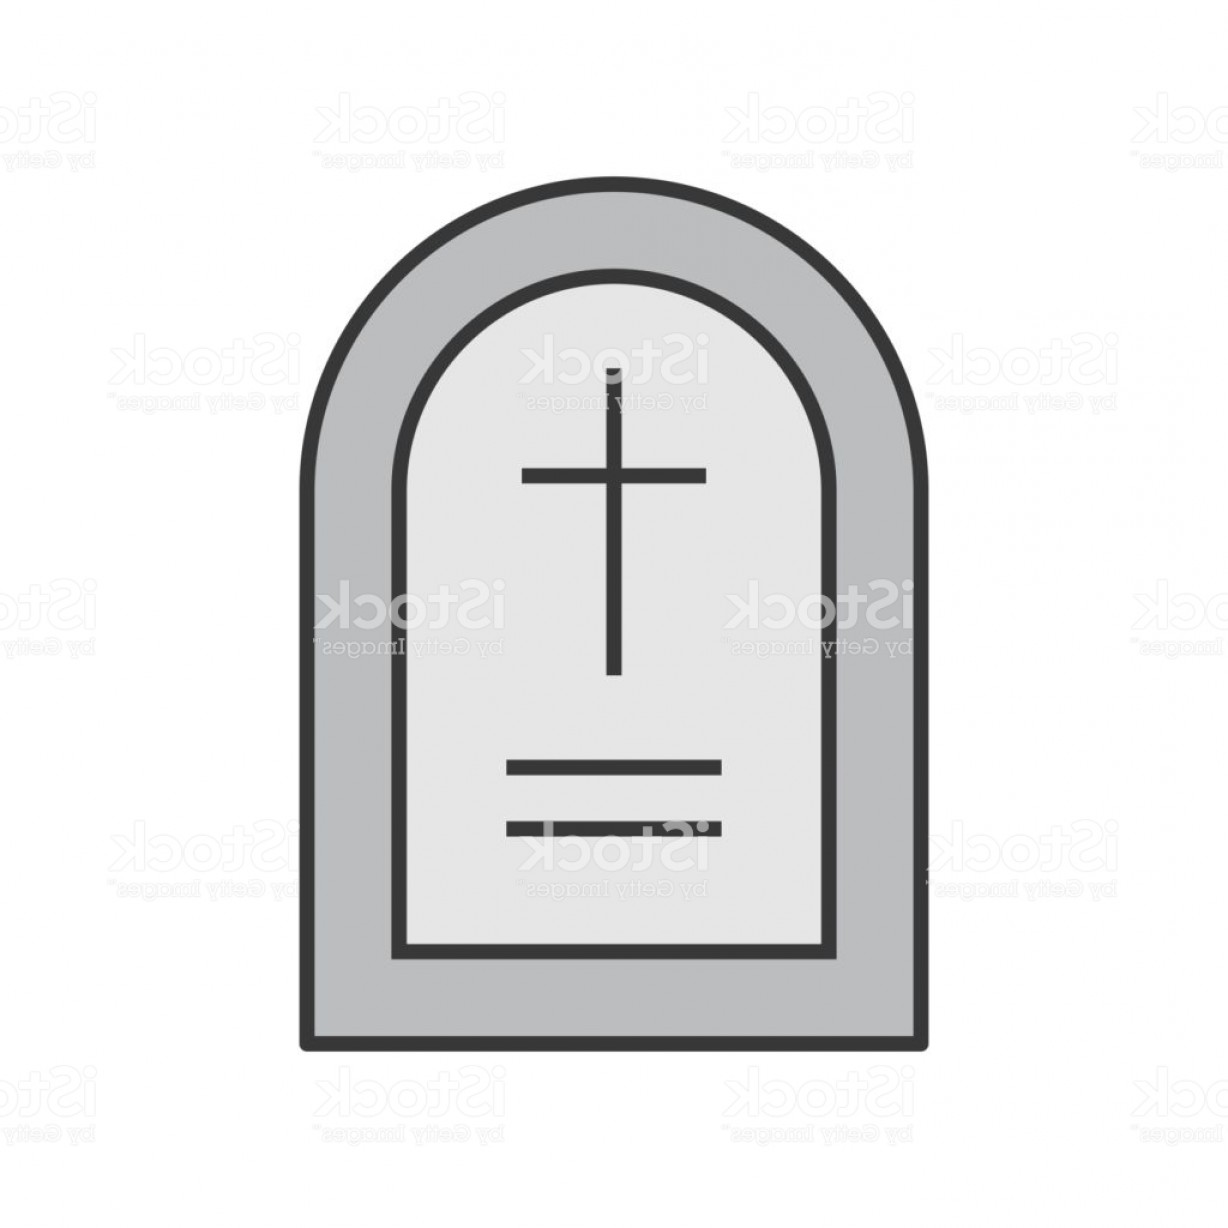 Gravestone Outline Vector: Gravestone Halloween Related Icon Filled Outline Design Editable Stroke Gm